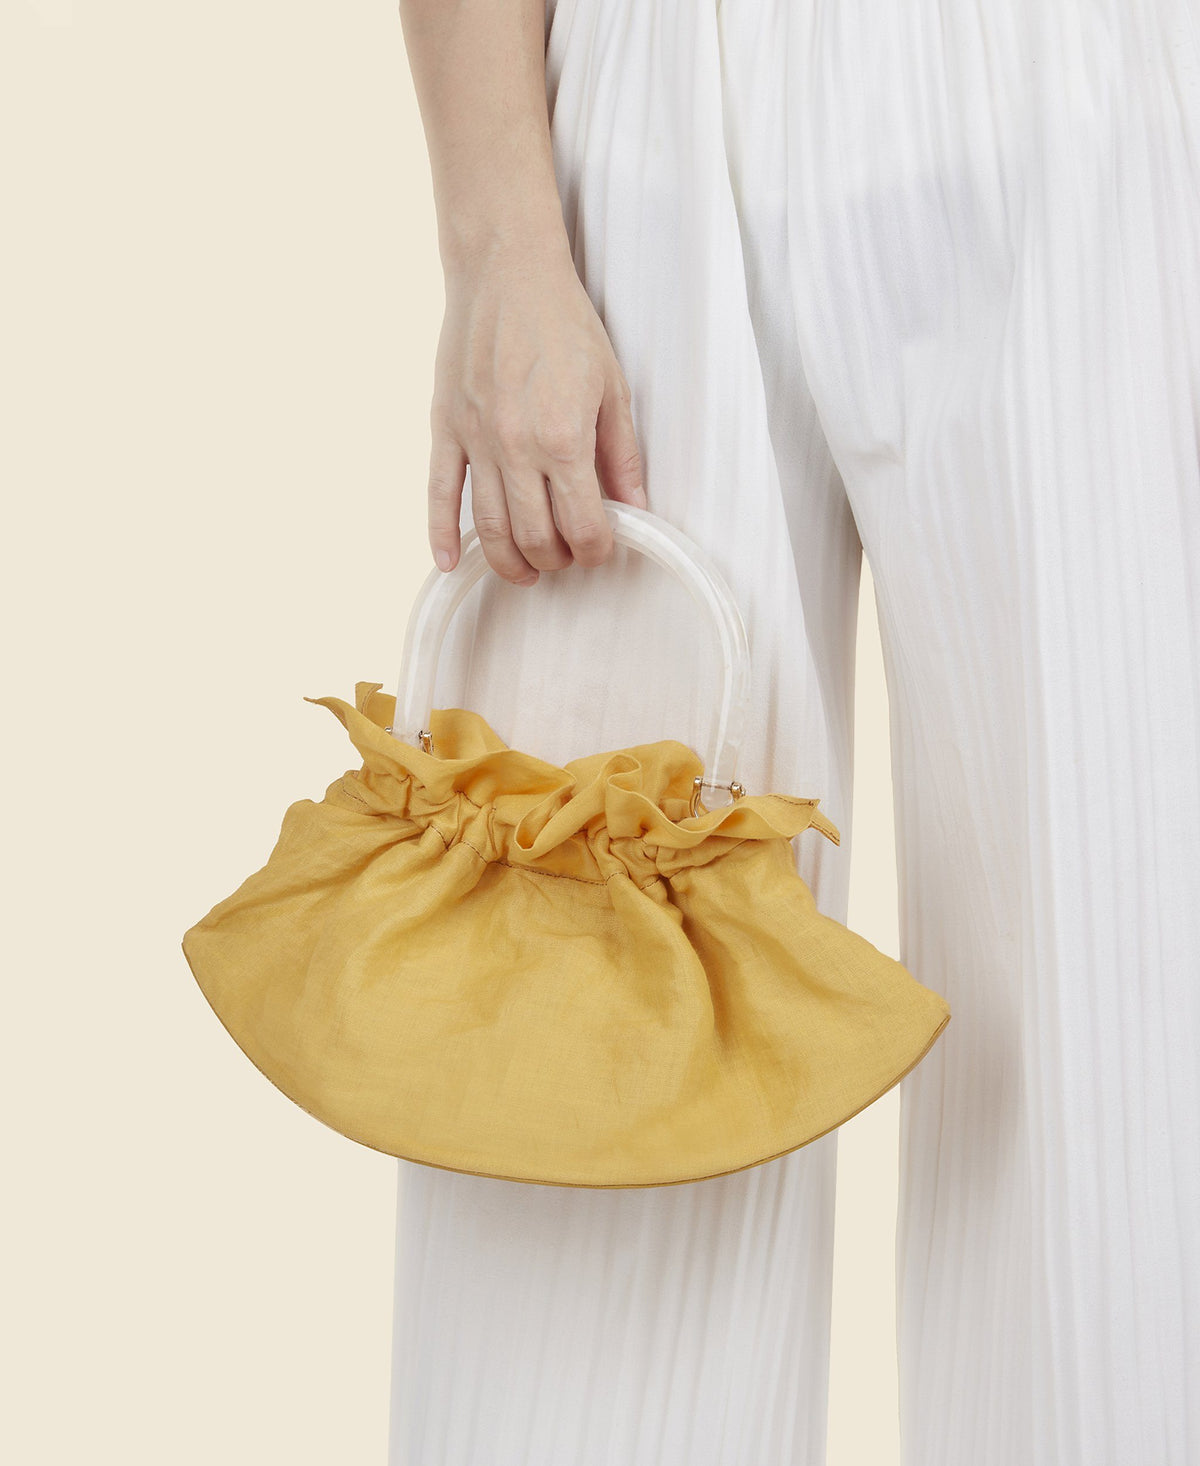 Cafuné Lily Bag in Dandelion